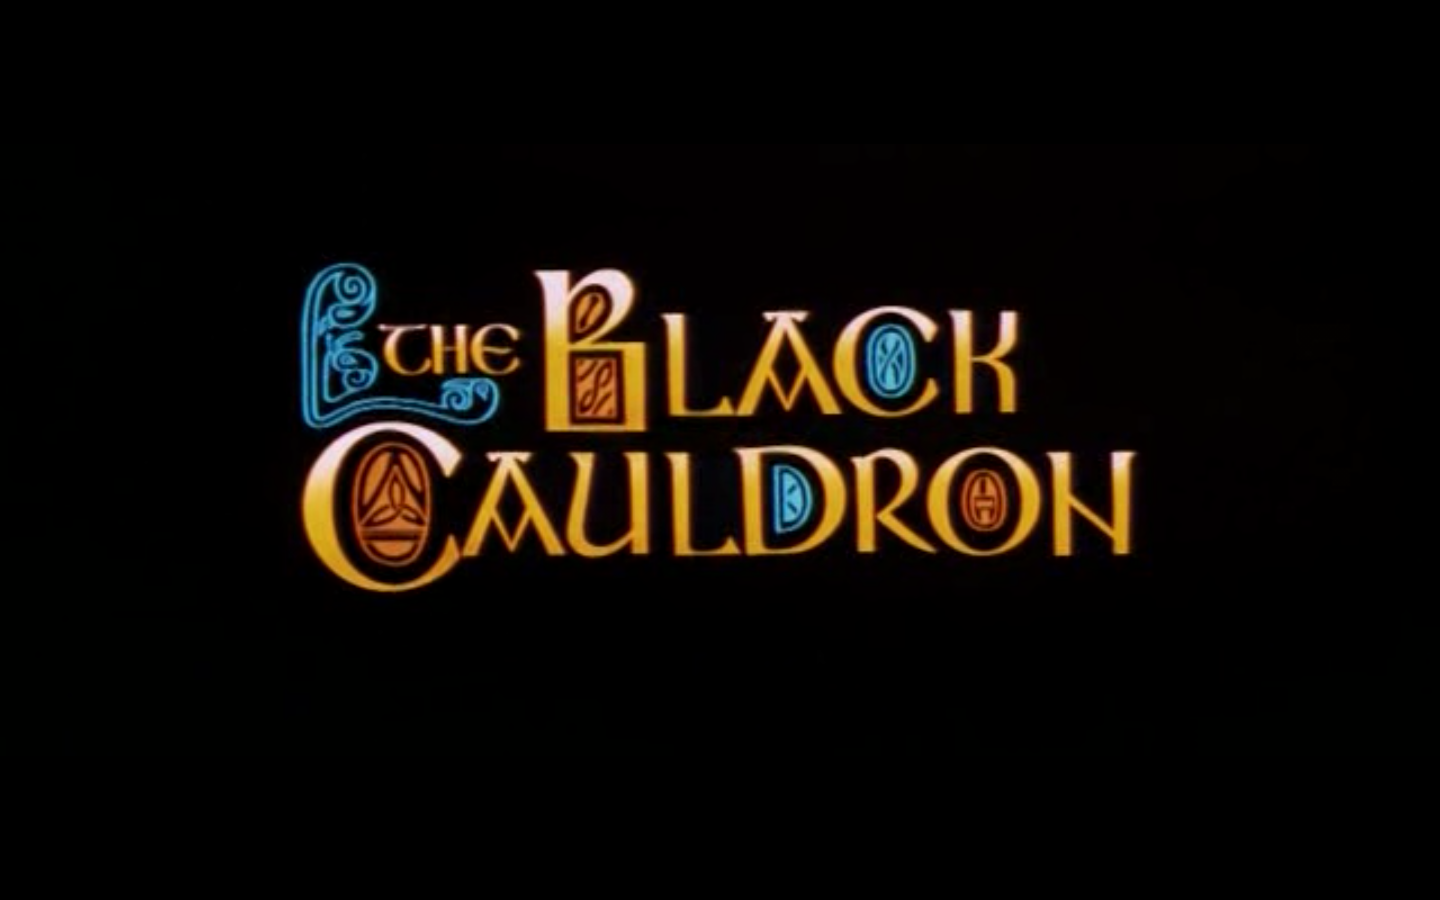 Rise Com Loan Reviews >> The Black Cauldron | Redbrick | University of Birmingham